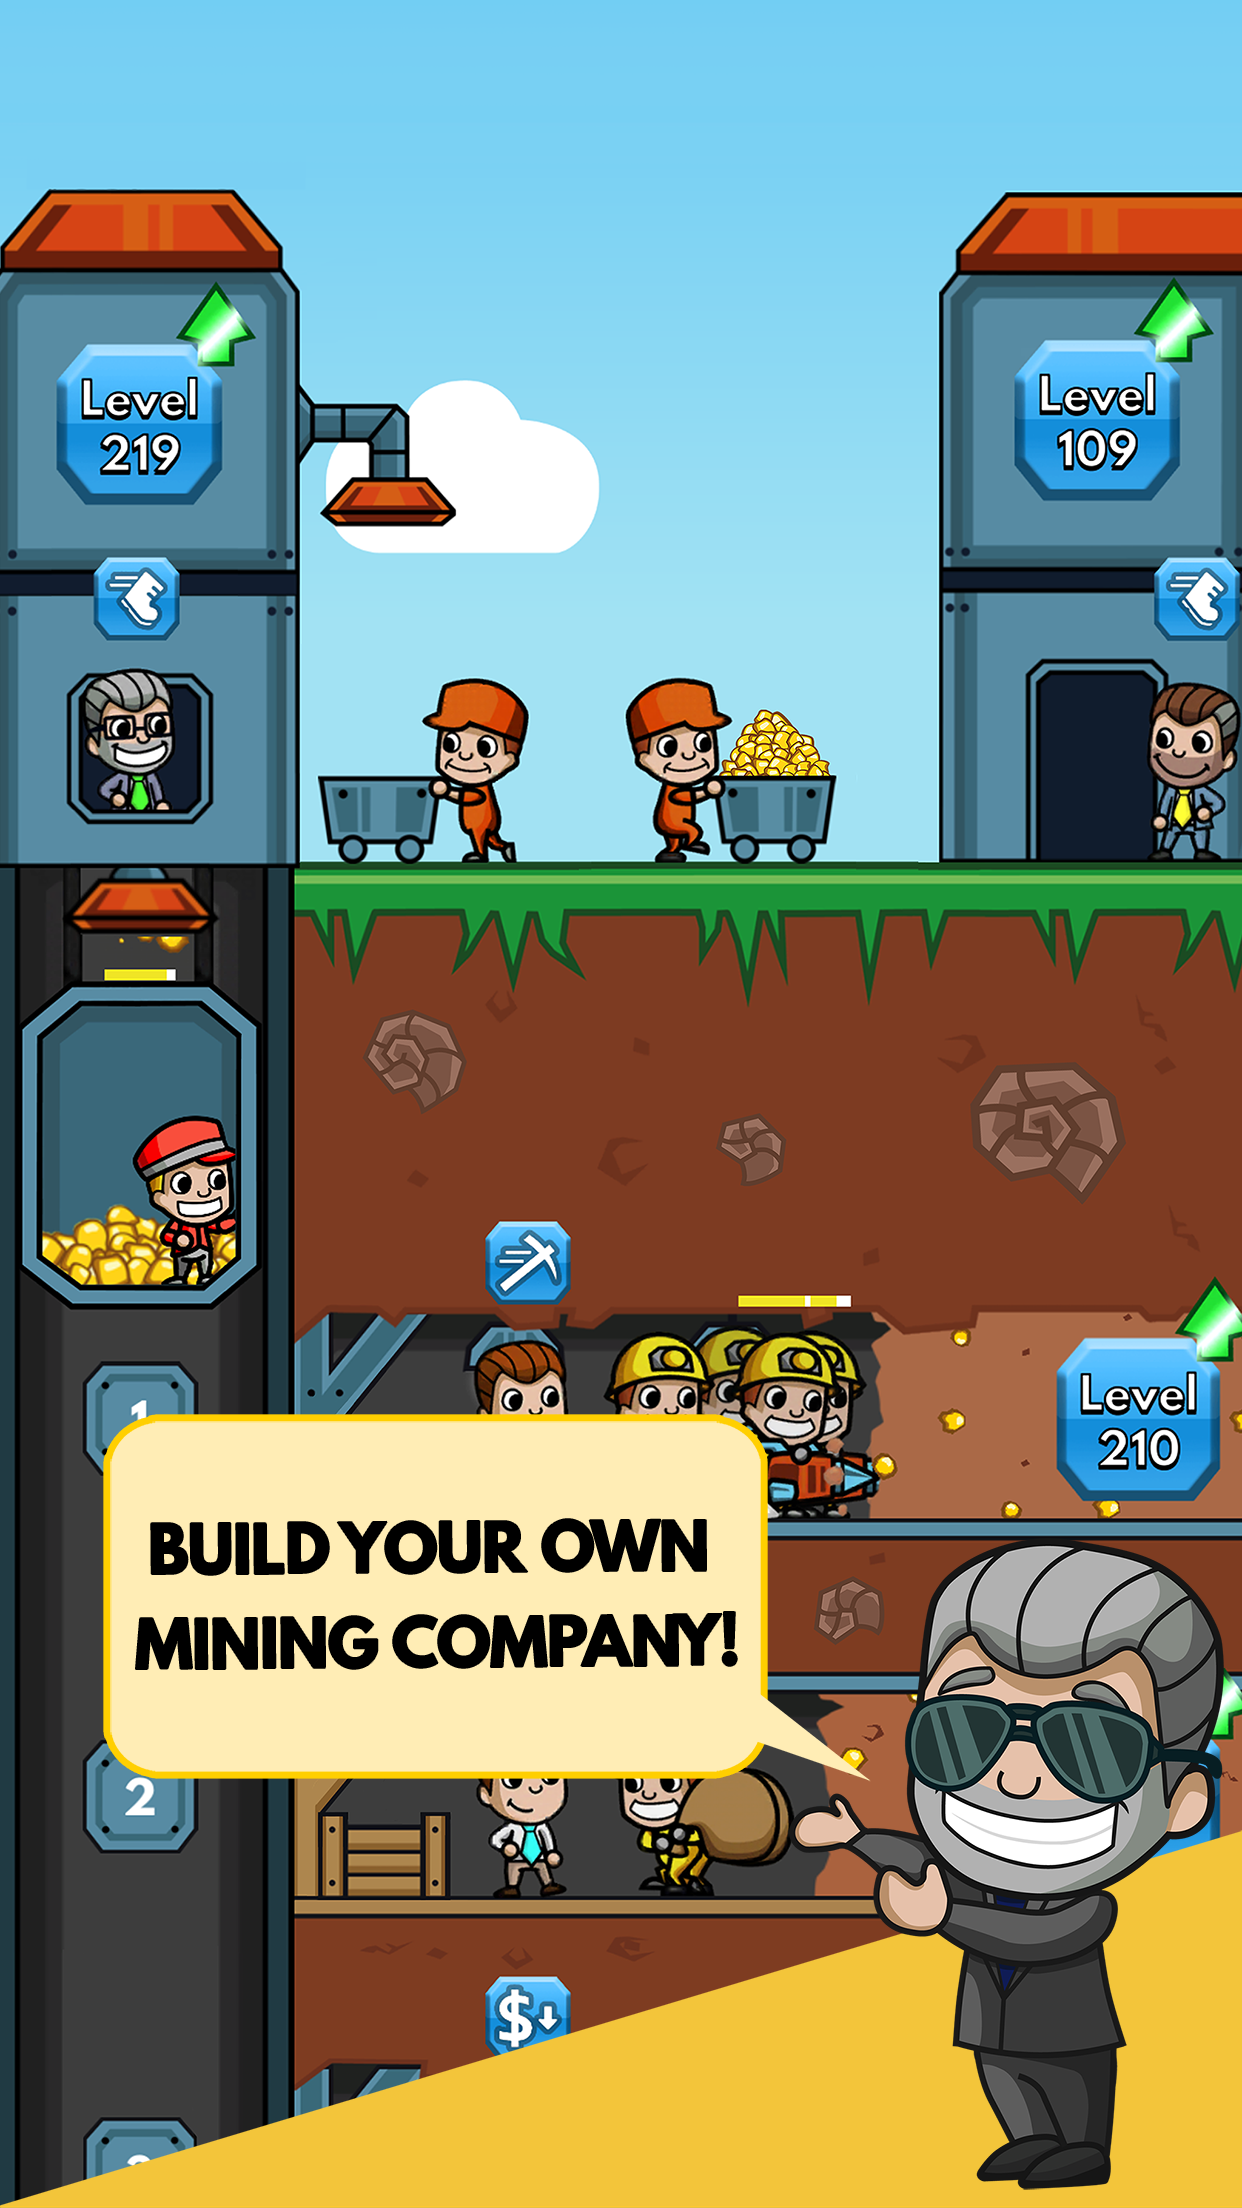 Build your own mining company